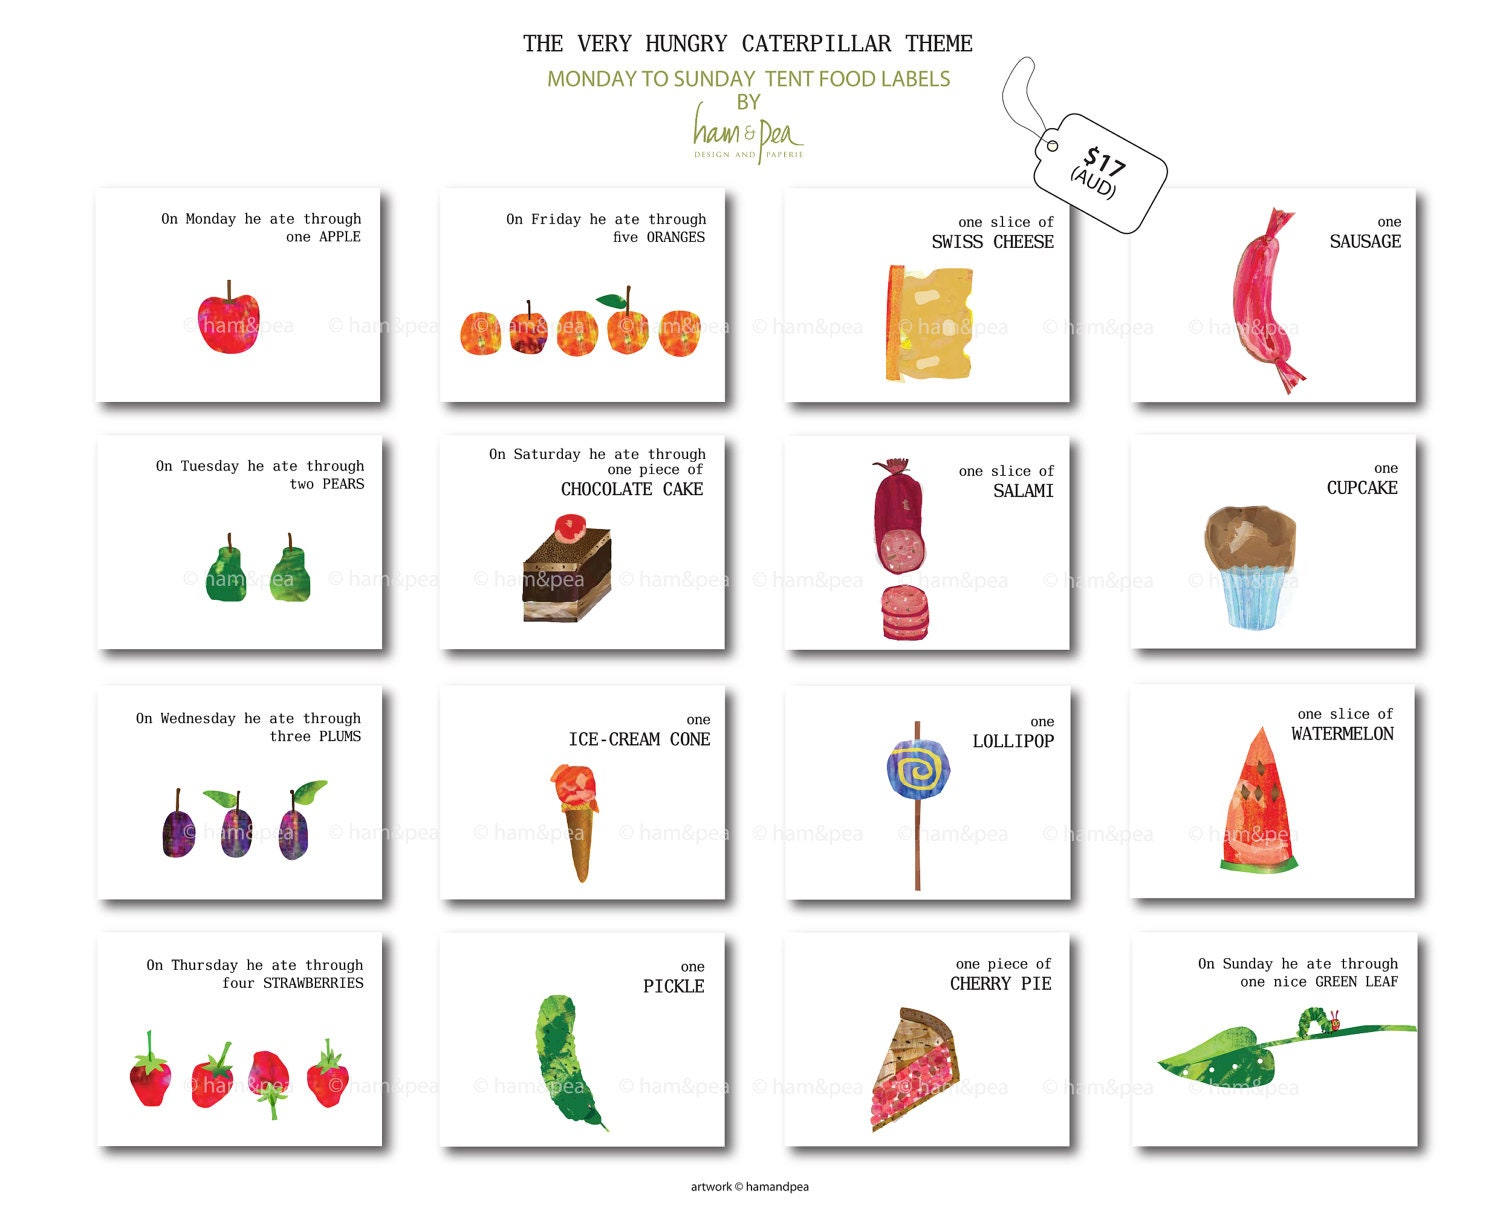 Magic image with the very hungry caterpillar story printable